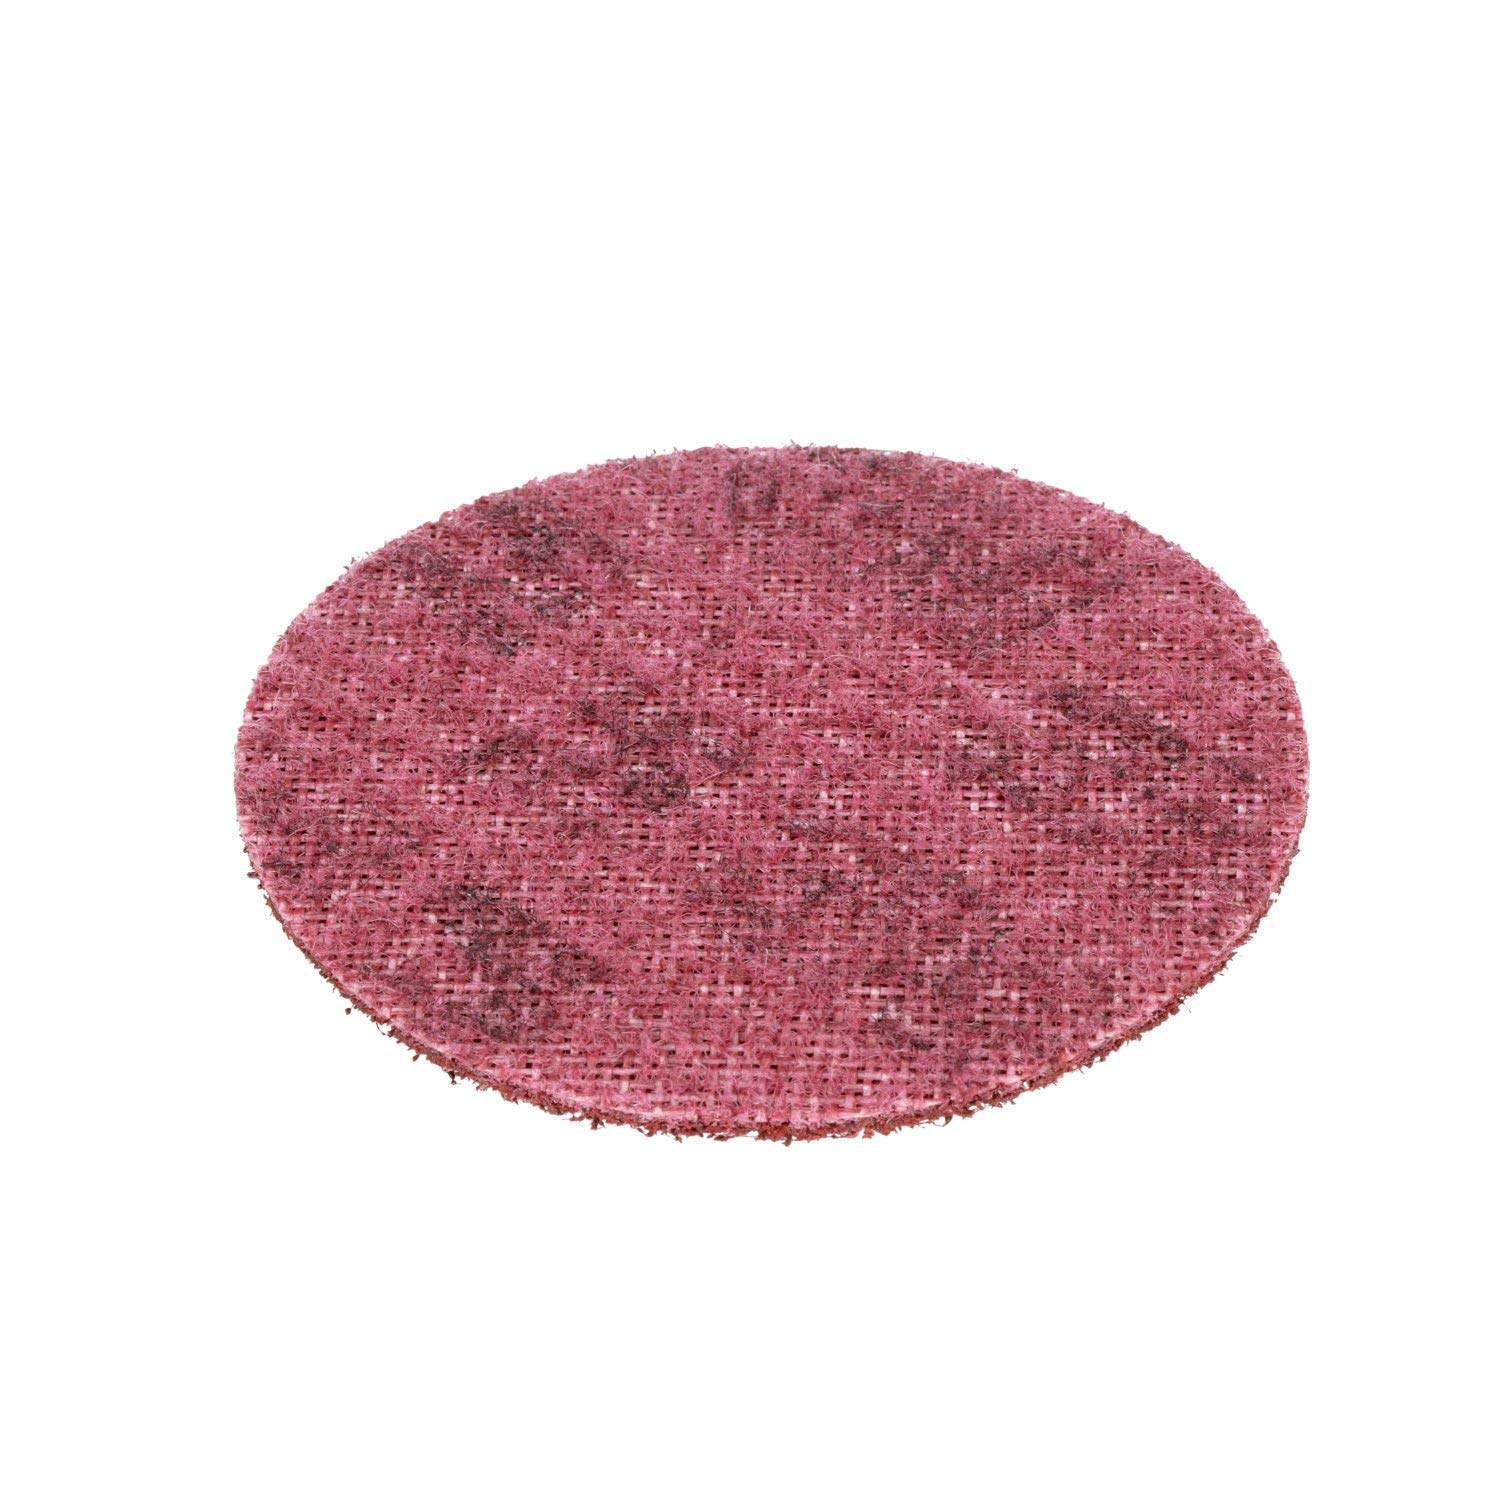 B000VA0LJY Scotch-Brite Surface Conditioning Disc, 6 in x NH A MED, 50 per case 71p1kW0tGcL._SL1500_